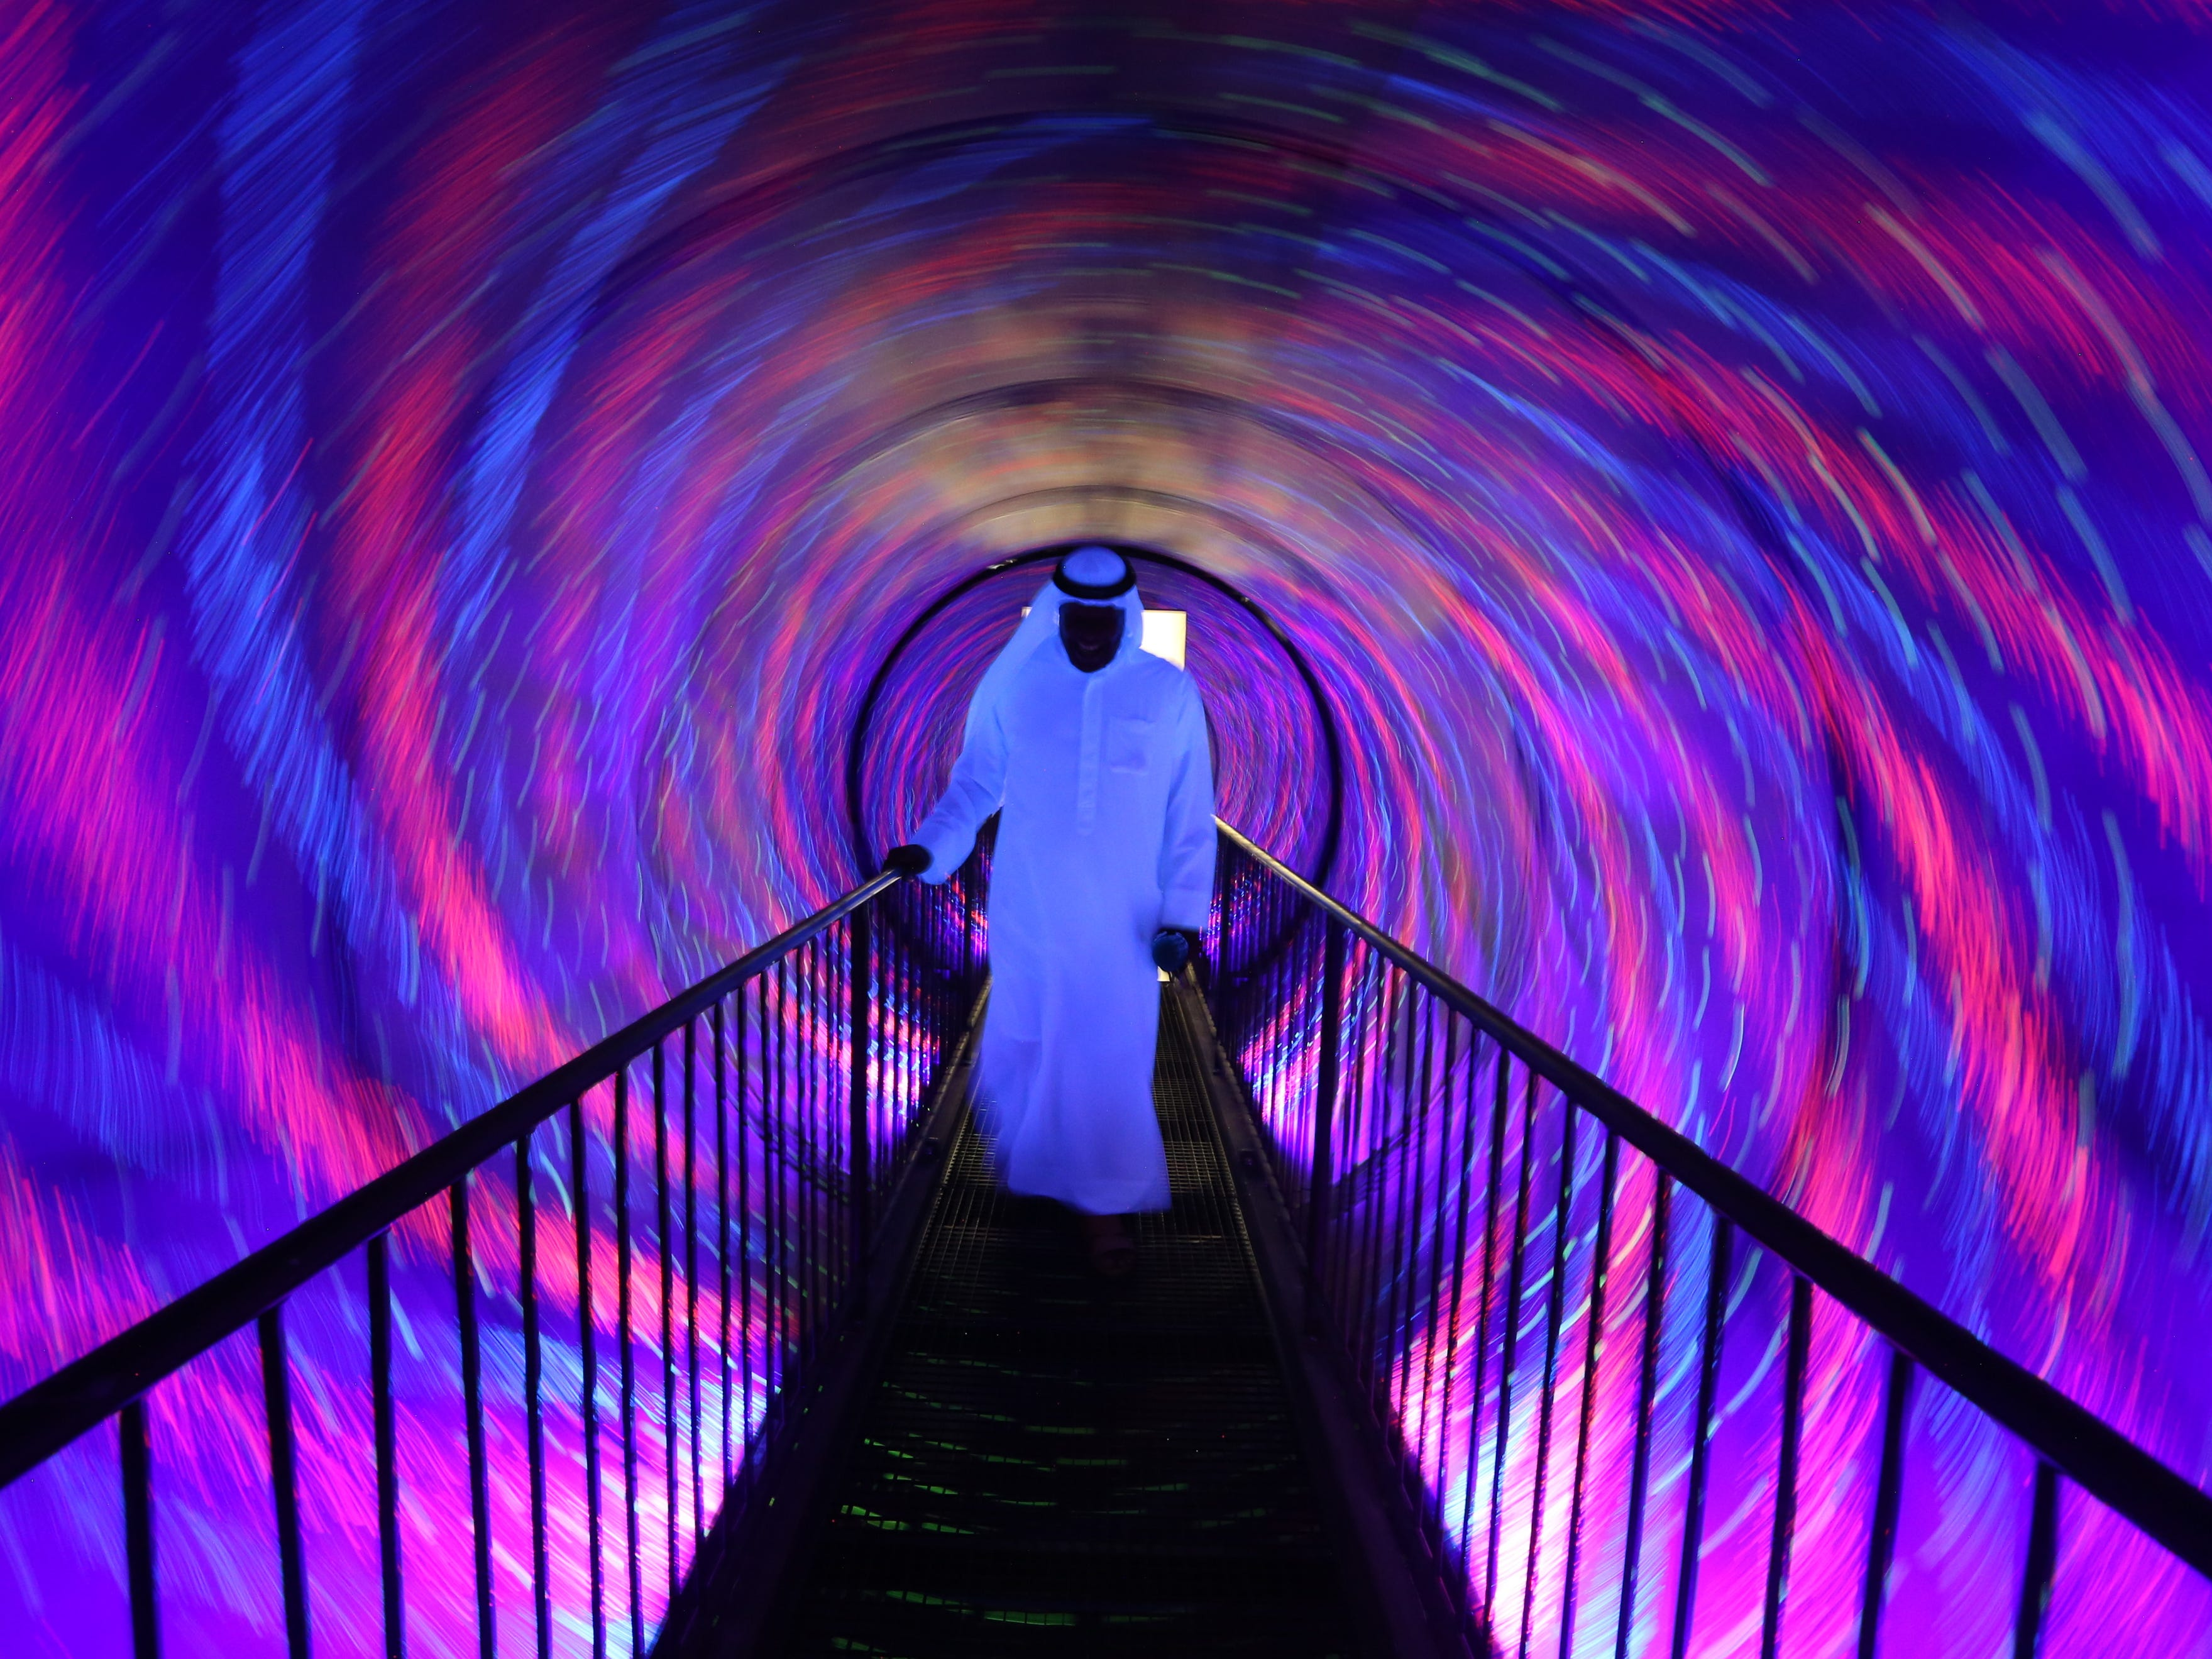 A visitor views artwork at the Museum of Illusions at Al Seef near the Dubai Creek in Gulf emirate of Dubai, United Arab Emirates on Sept. 9, 2018. The museum will open to the public on Sept. 12, 2018, and is featuring more than 80 exhibits of all shapes and sizes.